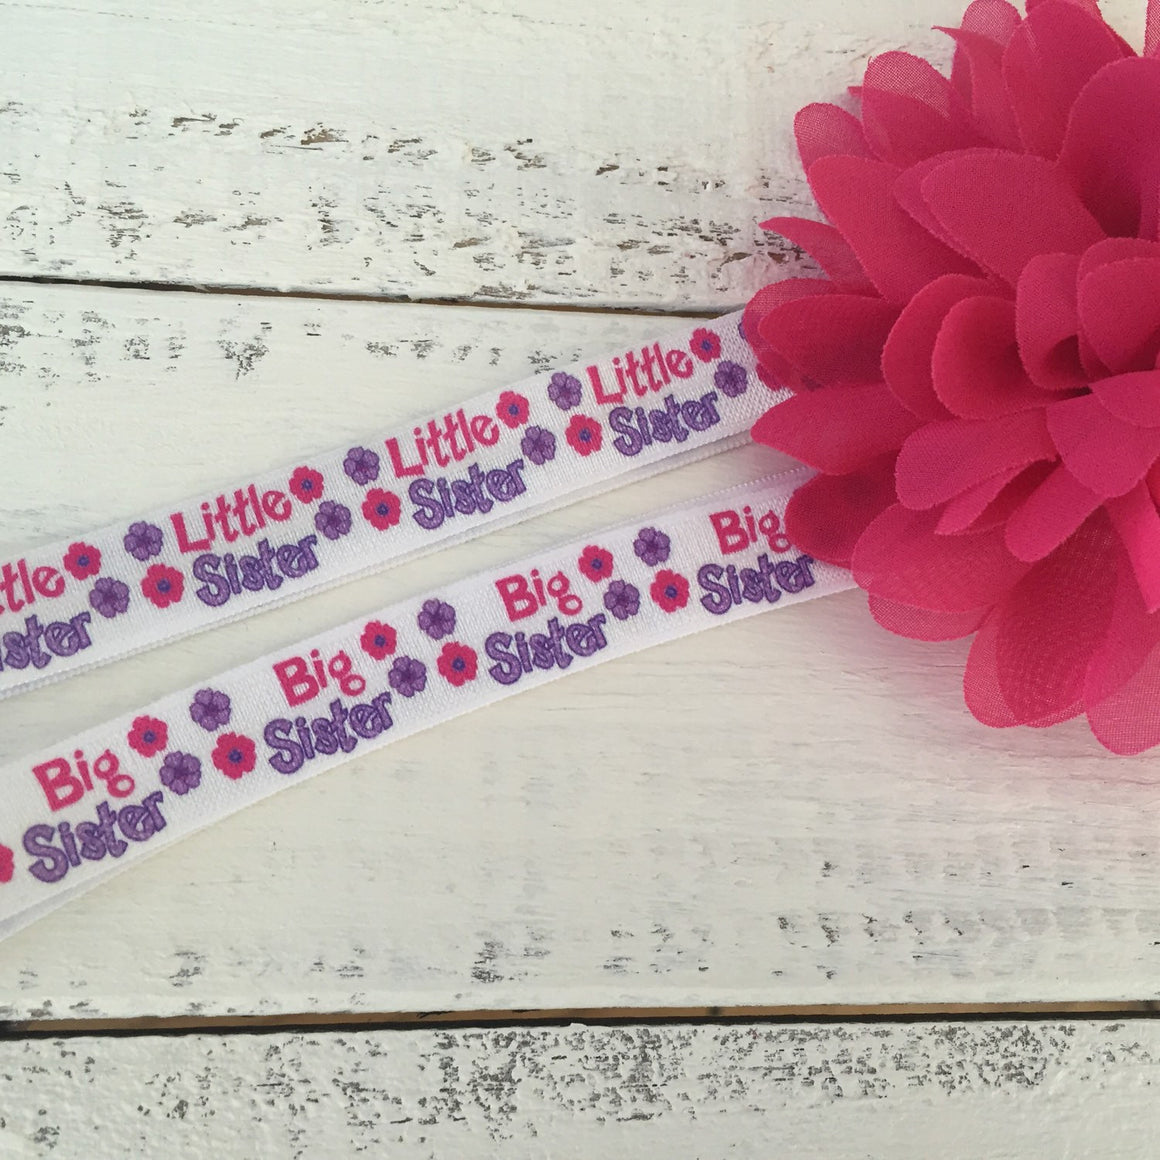 Sister headbands - Little or Big sister - HoneyLoveBoutique